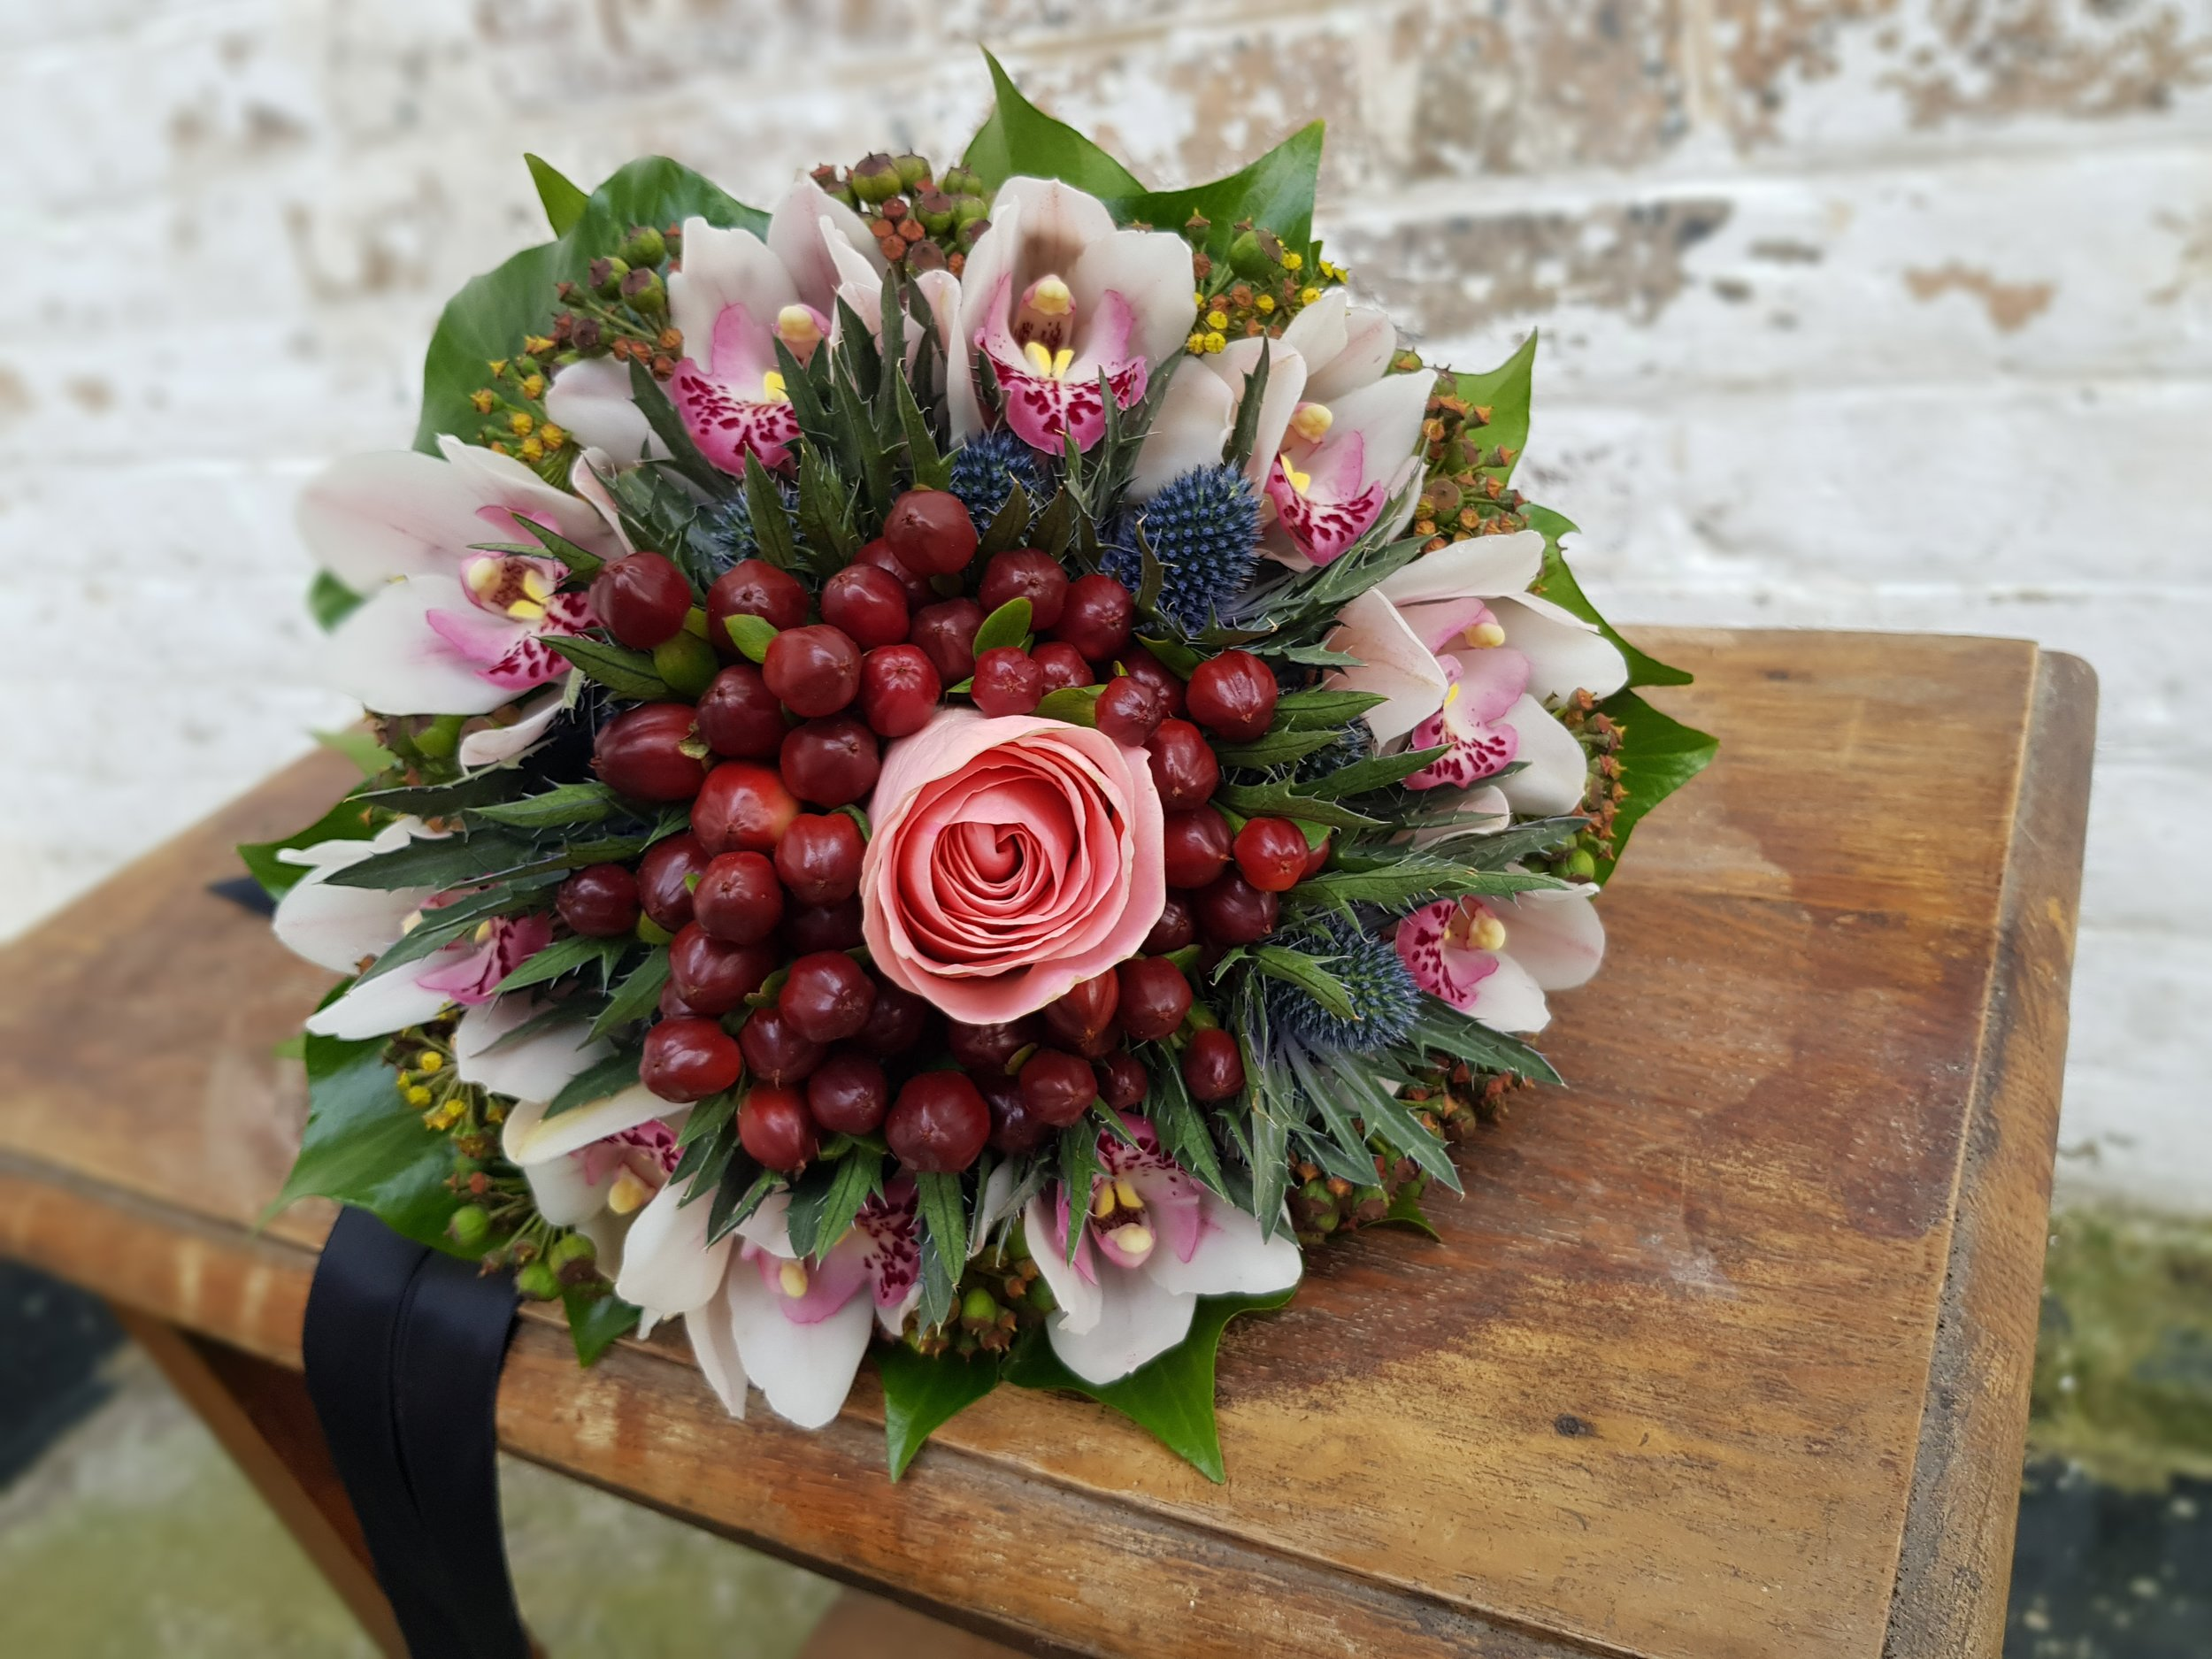 dorset_florist_weymouth_flowers_weddings_funerals_5.jpg